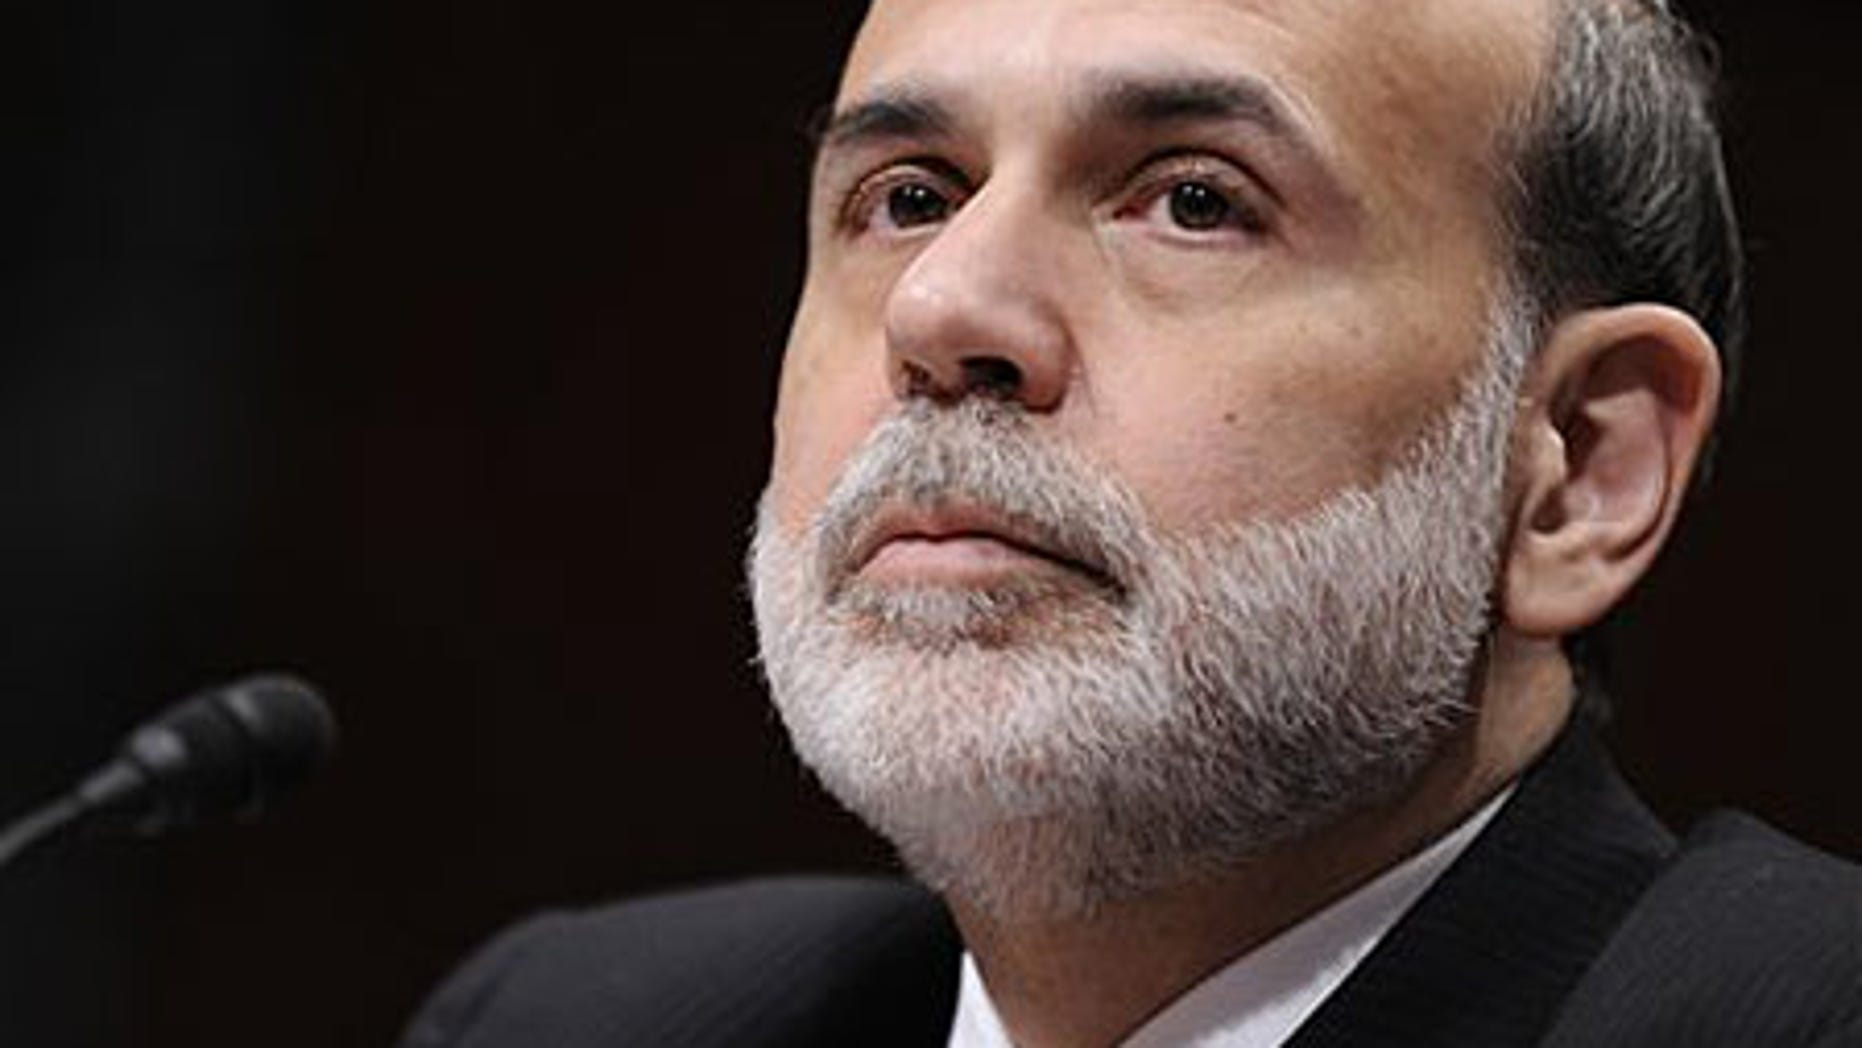 Oops! Back in March, 2007, Ben Bernanke thought the subprime problem was likely to be contained